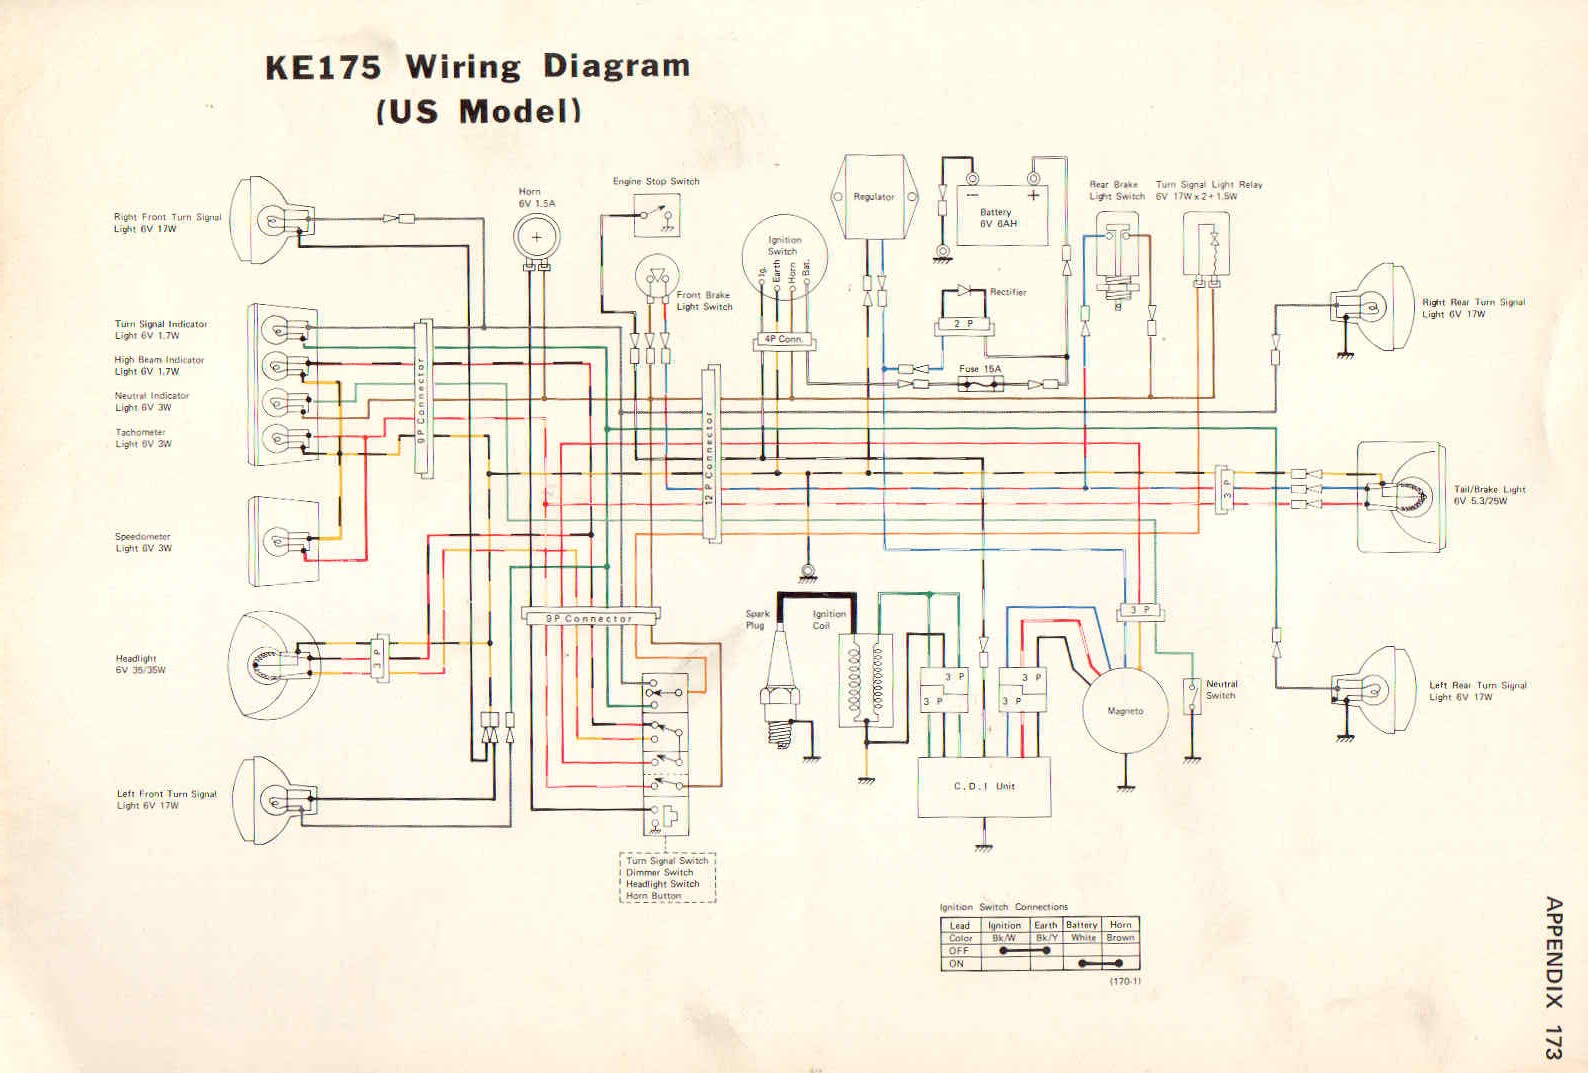 hight resolution of crf250r wiring diagram wiring diagram blogs home electrical wiring diagrams crf250r wiring diagram